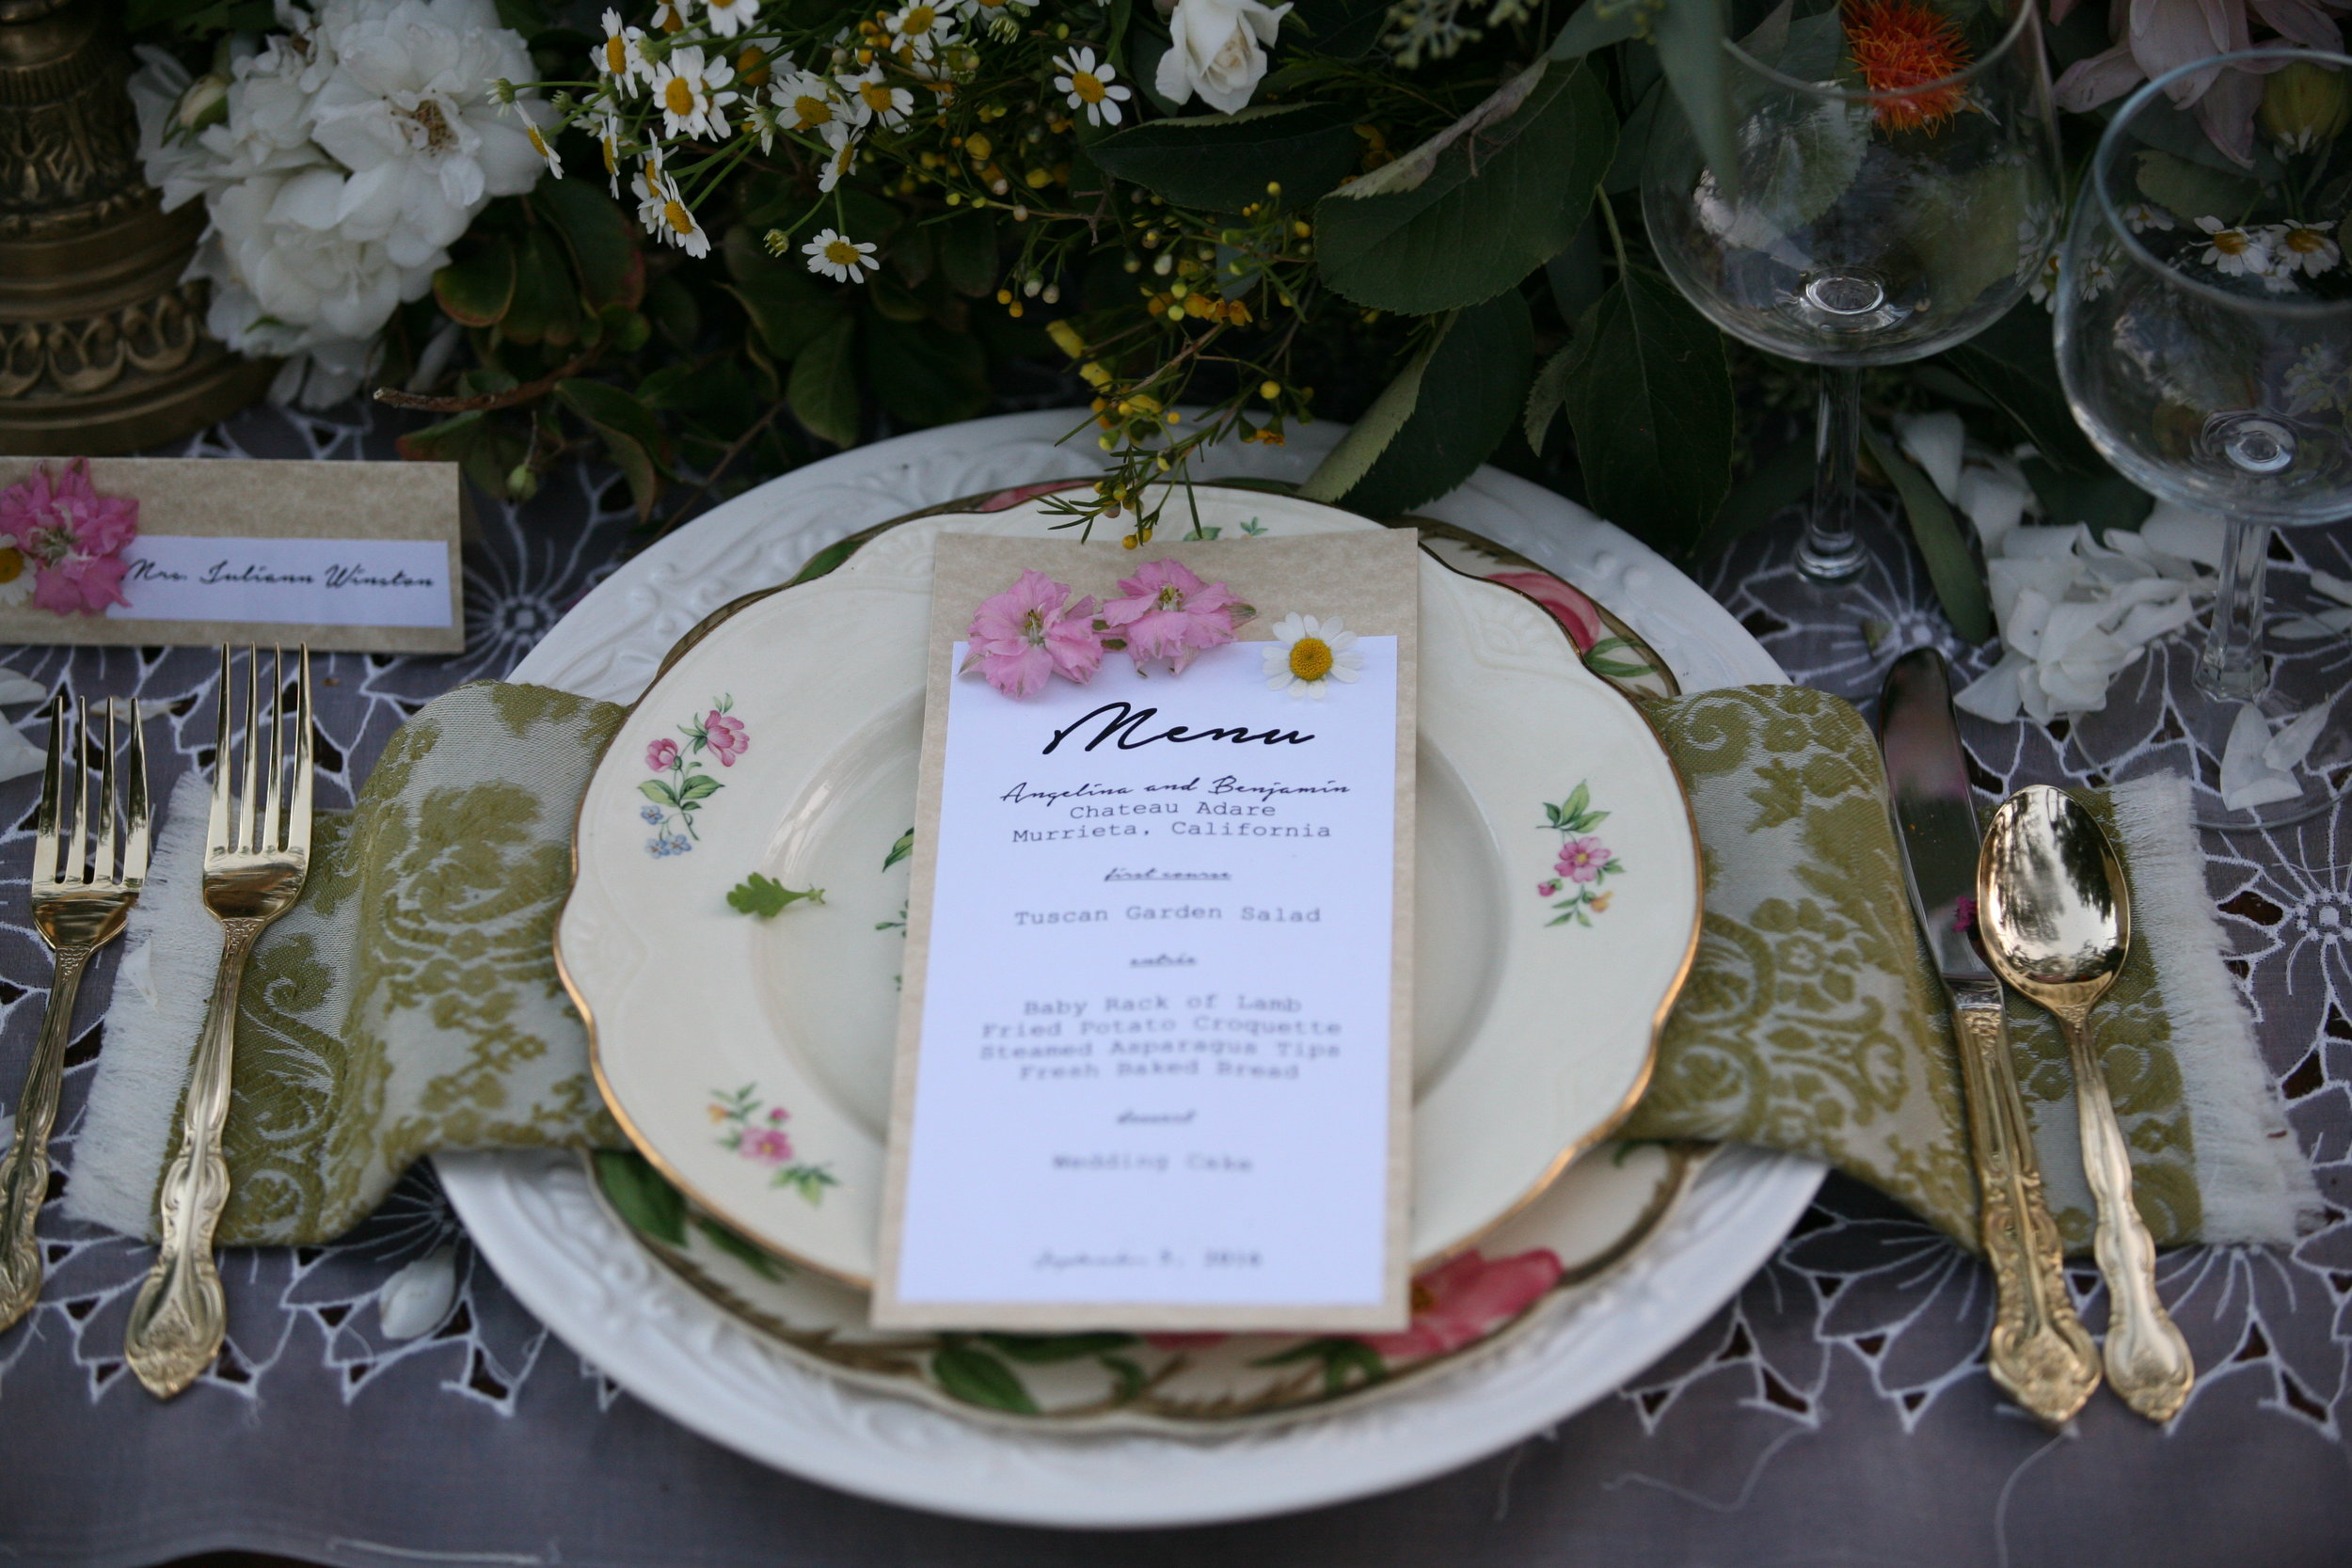 White charger plate is the base of this wedding table setting.